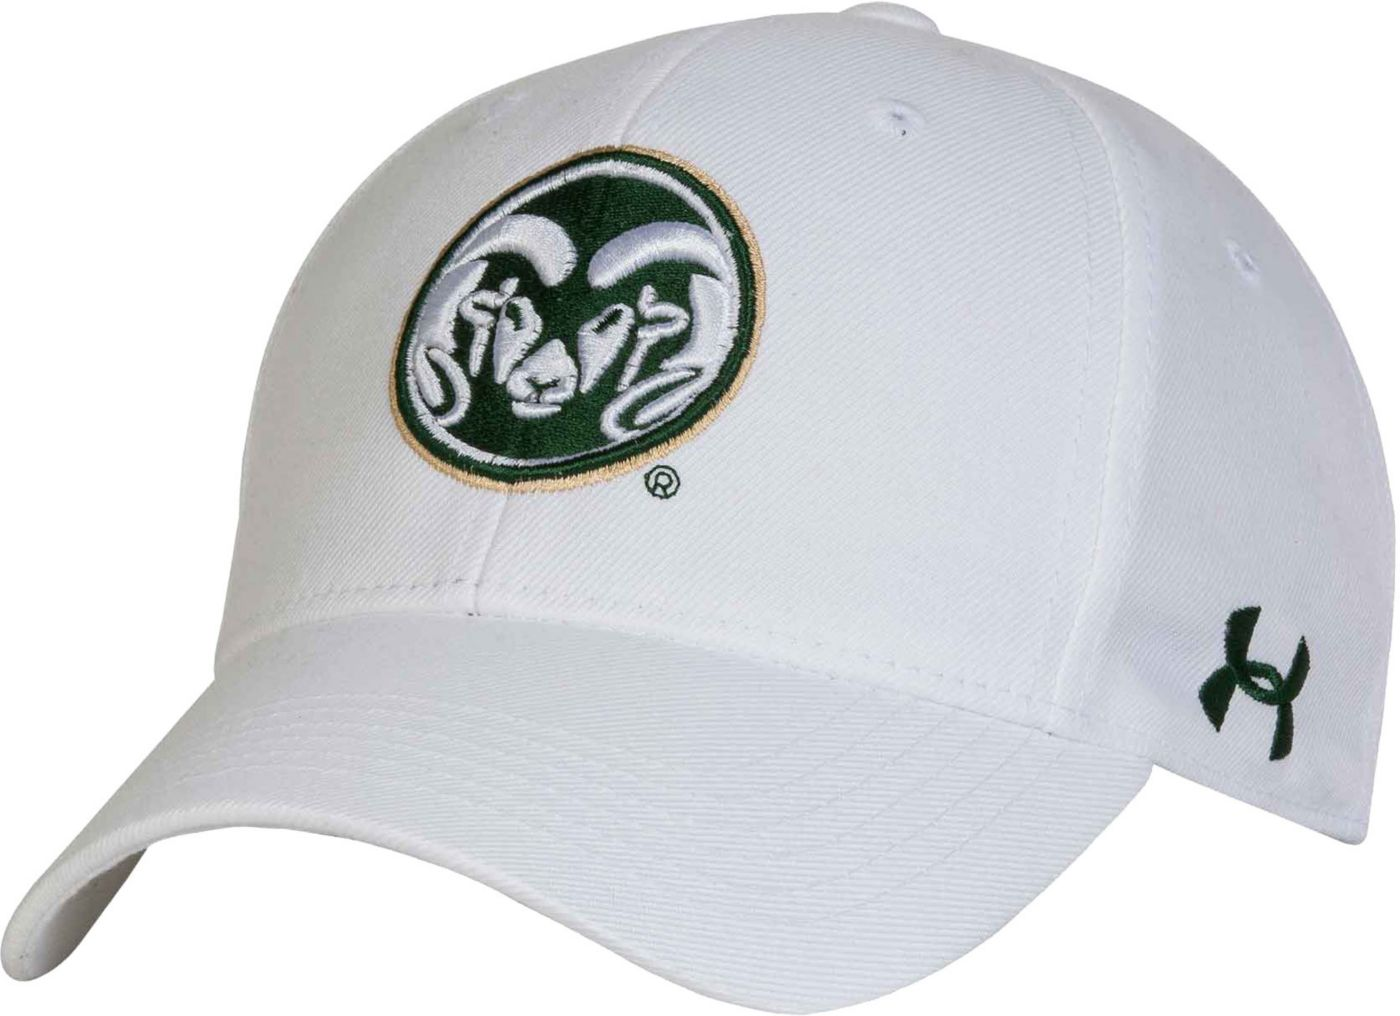 Under Armour Men's Colorado State Rams Adjustable White Hat